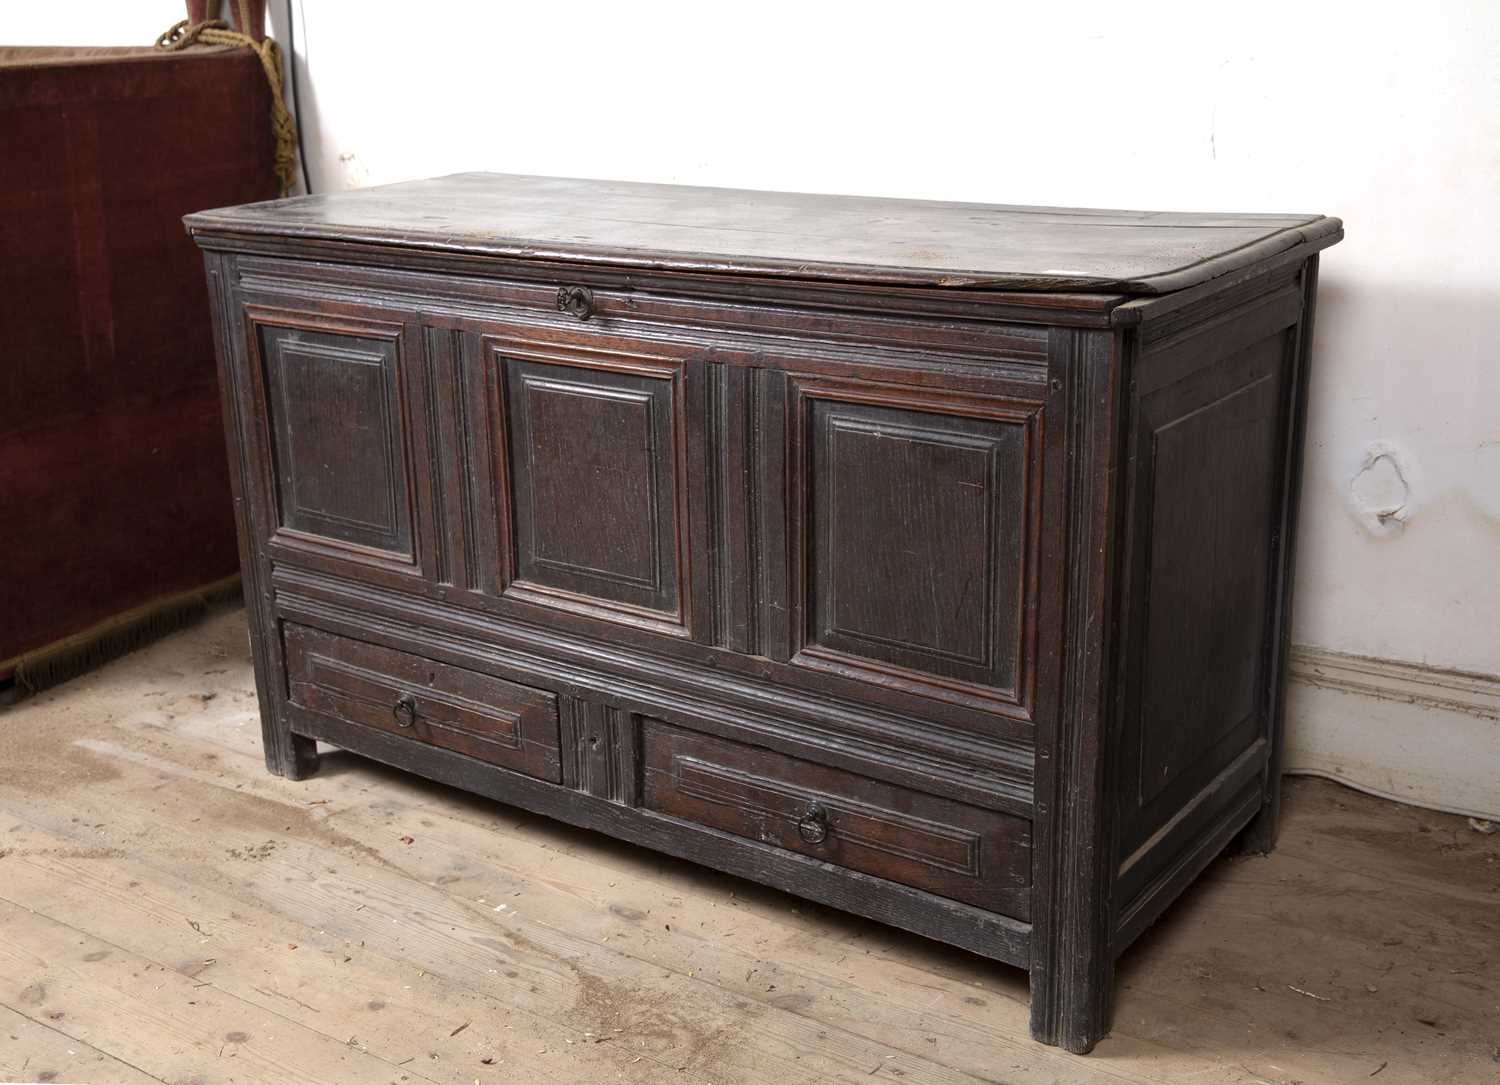 A late 17th Century oak coffer, with triple panelled front above two drawers, on block feet, 124cm - Image 3 of 5